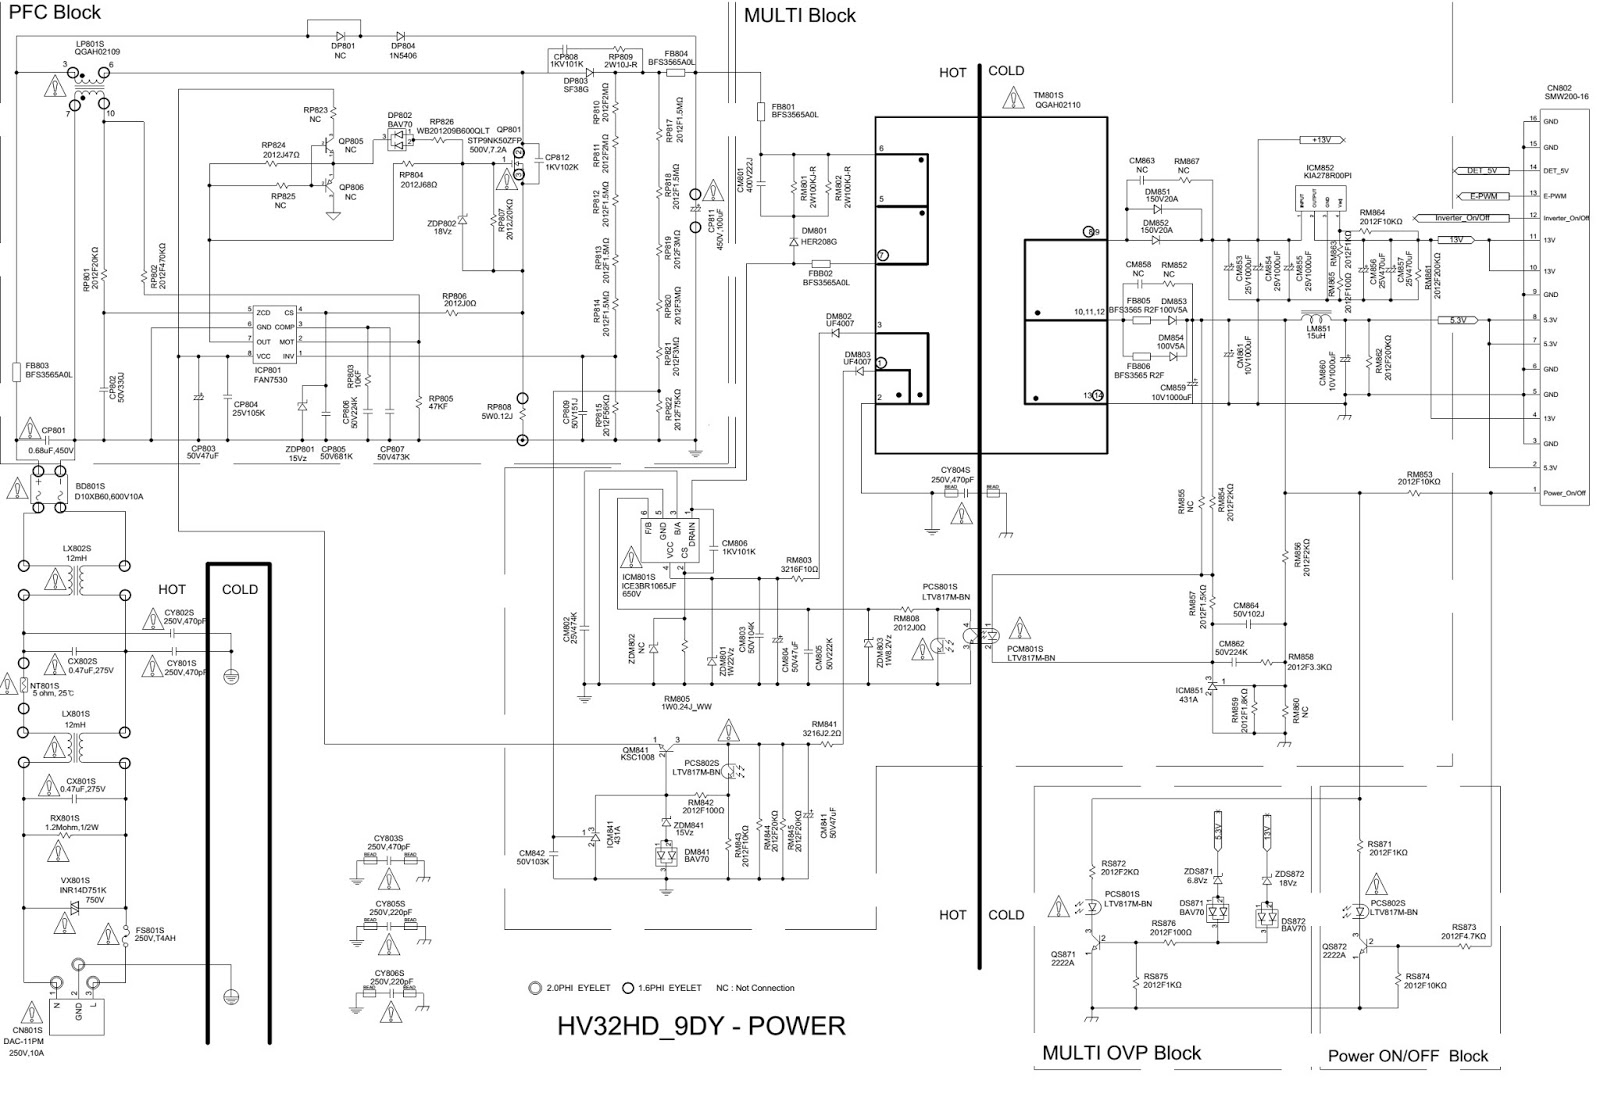 Tv Power Schematic Schema Wiring Diagrams Inverter Diagram Samsung Ln 26b350f1 32b350f1 Tft Lcd And Supply